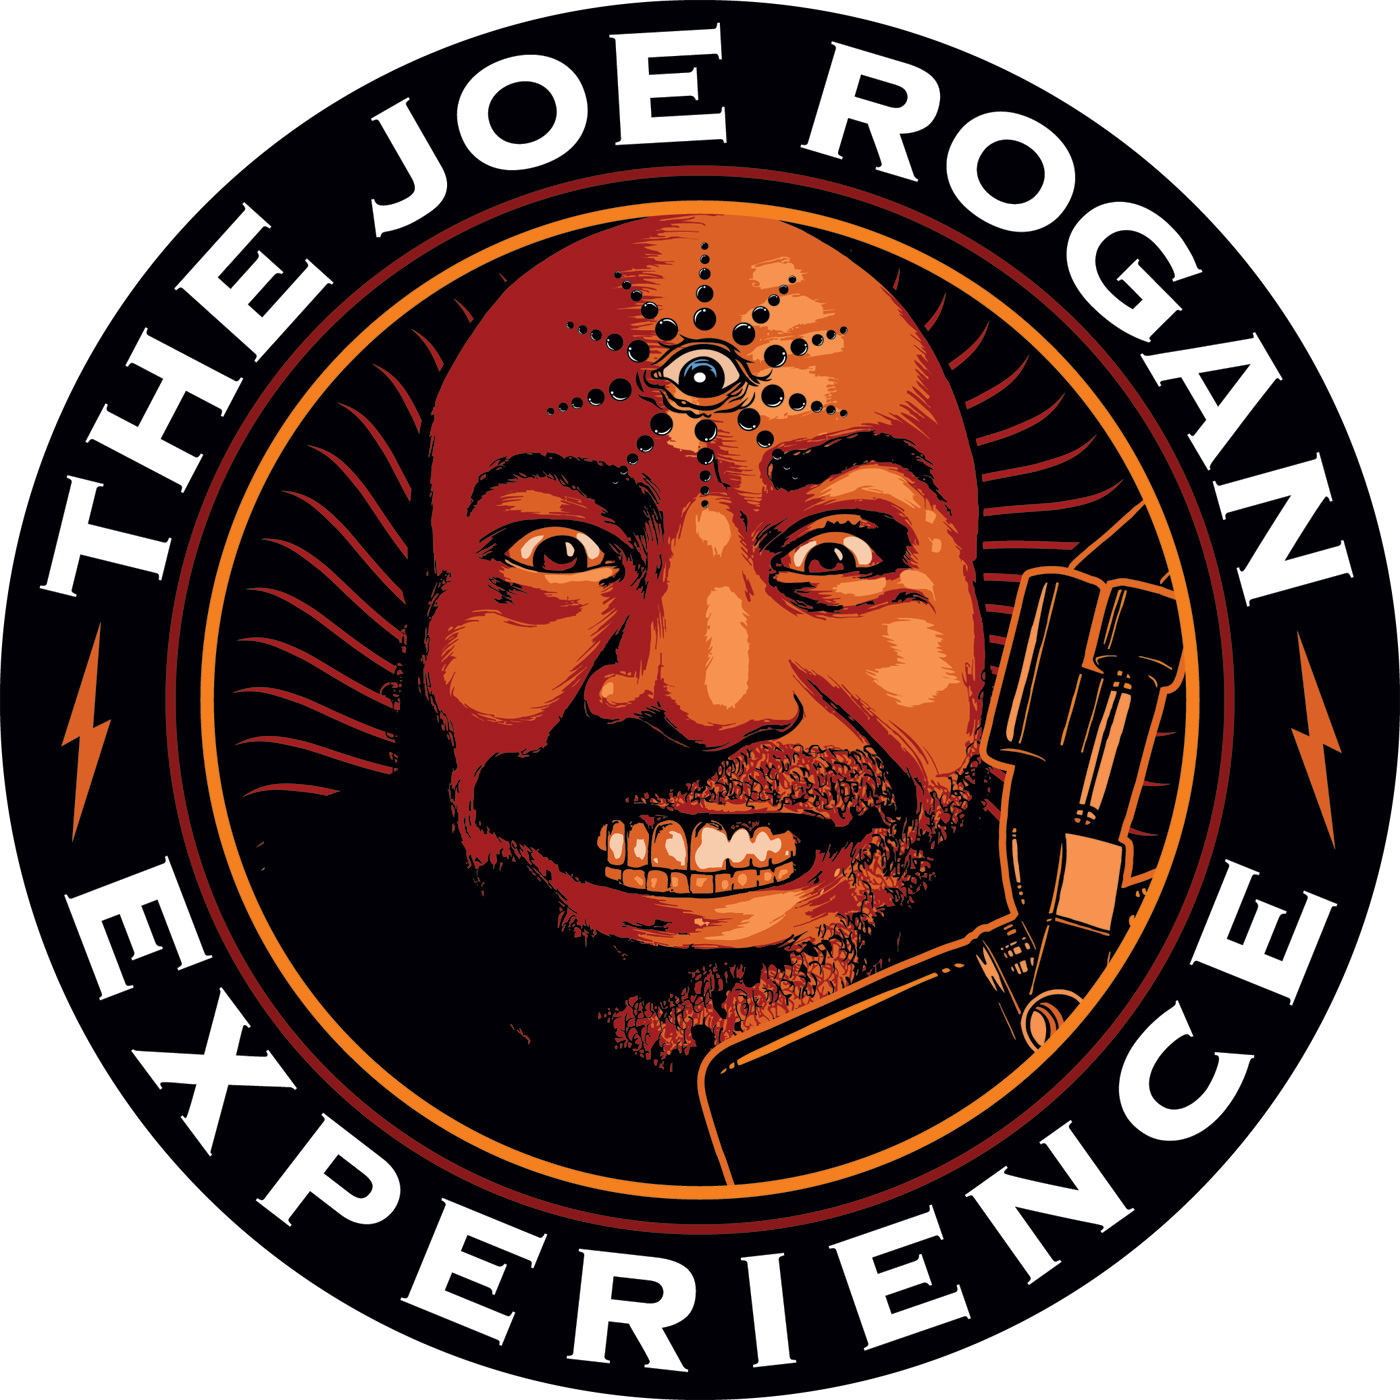 The Joe Rogan Experience PODCAST #64 - John Heffron, Brian Redban